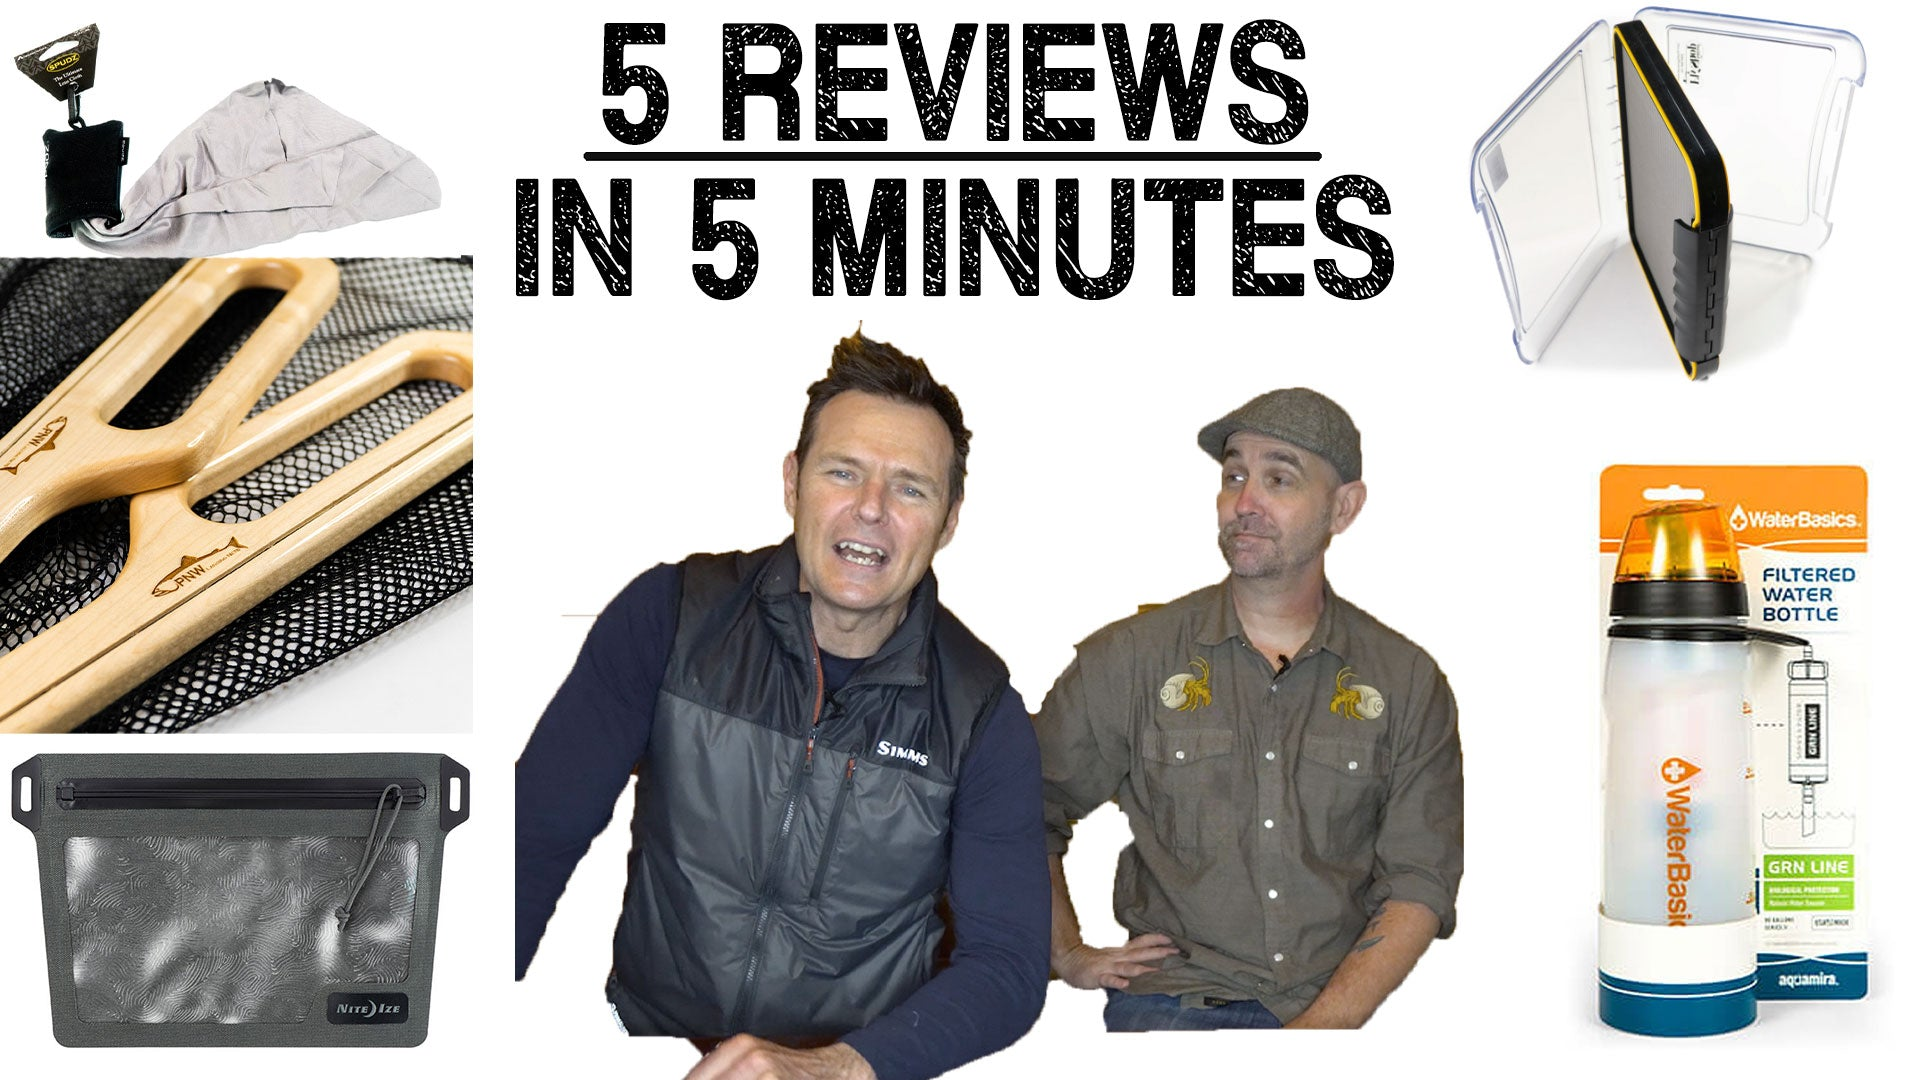 5 Reviews in 5 minutes Ep. 2